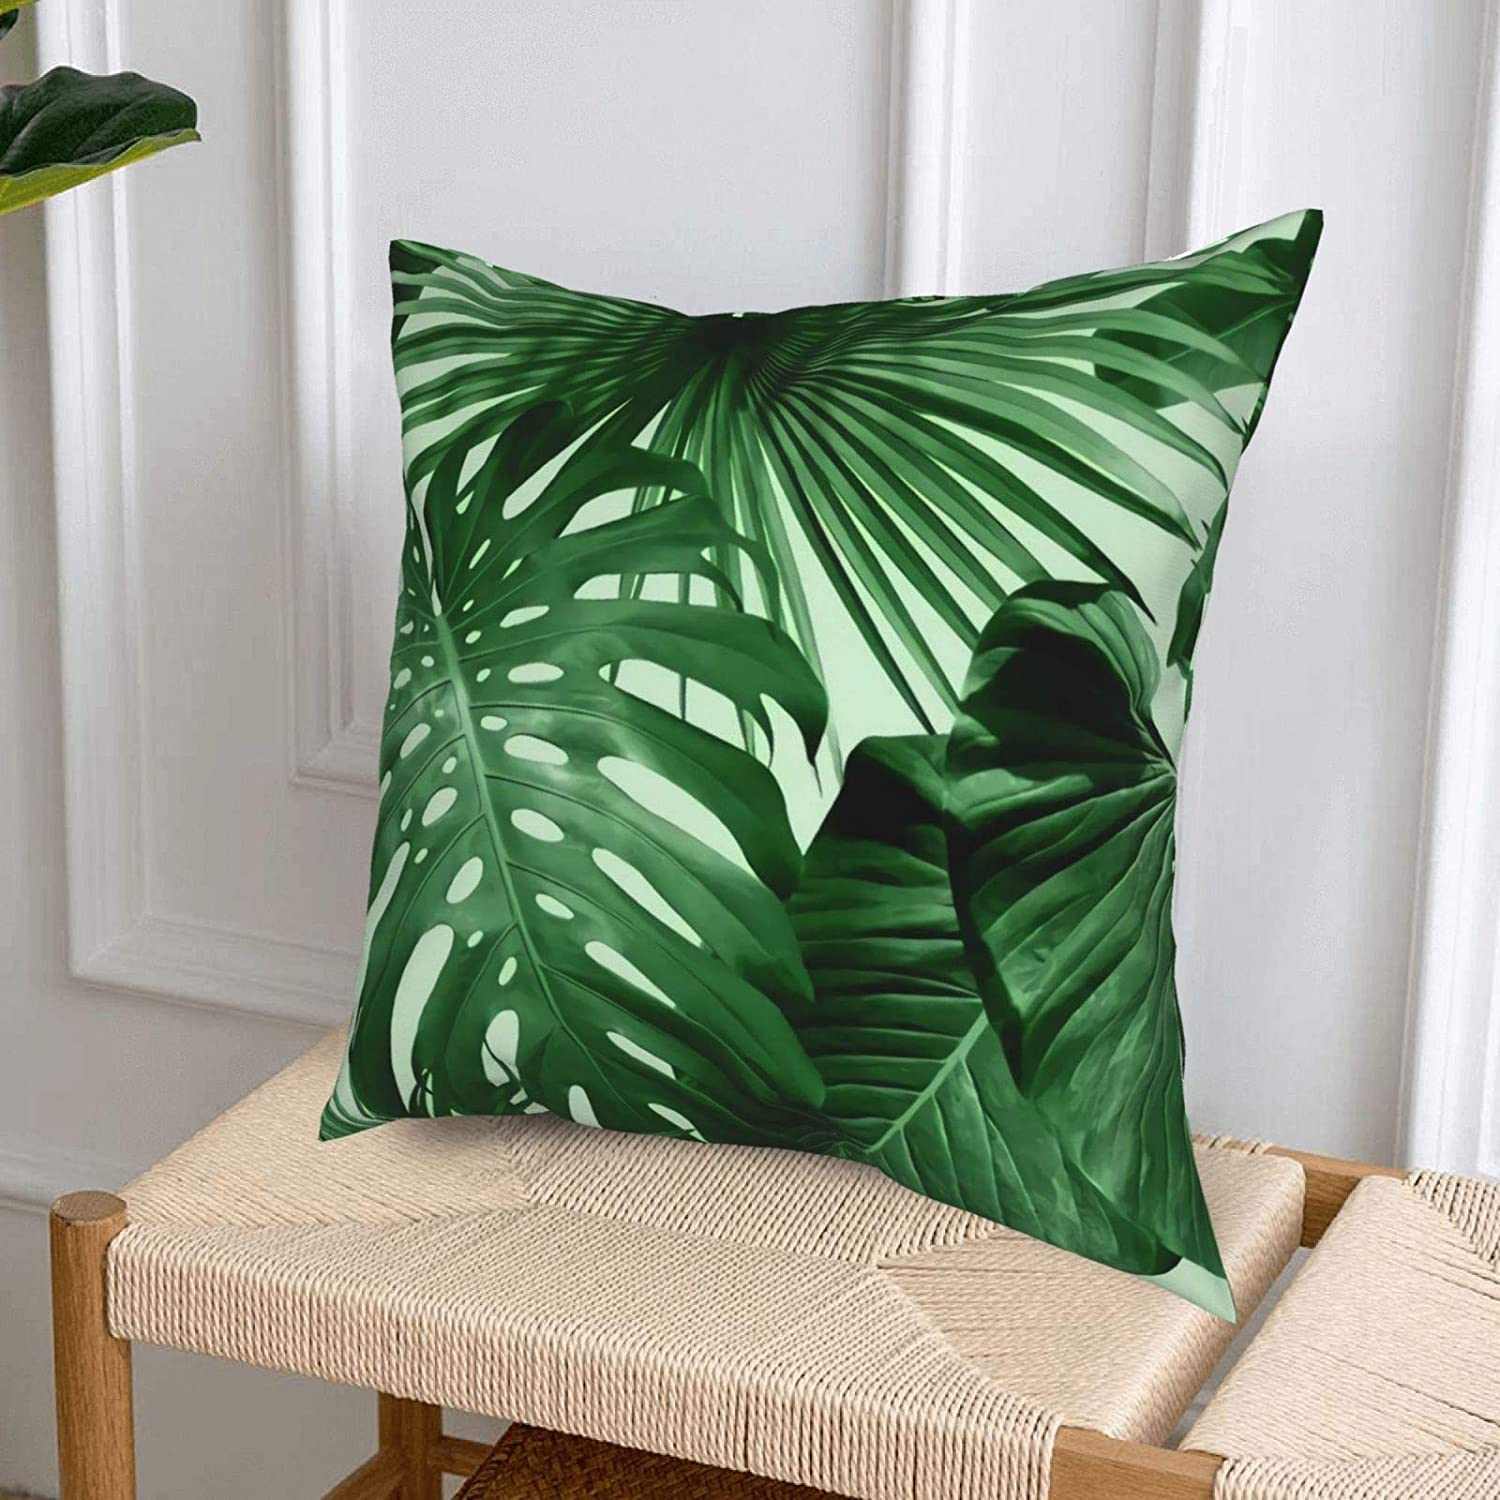 Buy Tropical Palm Leaves Throw Pillow Covers Cushion Soft Square ...